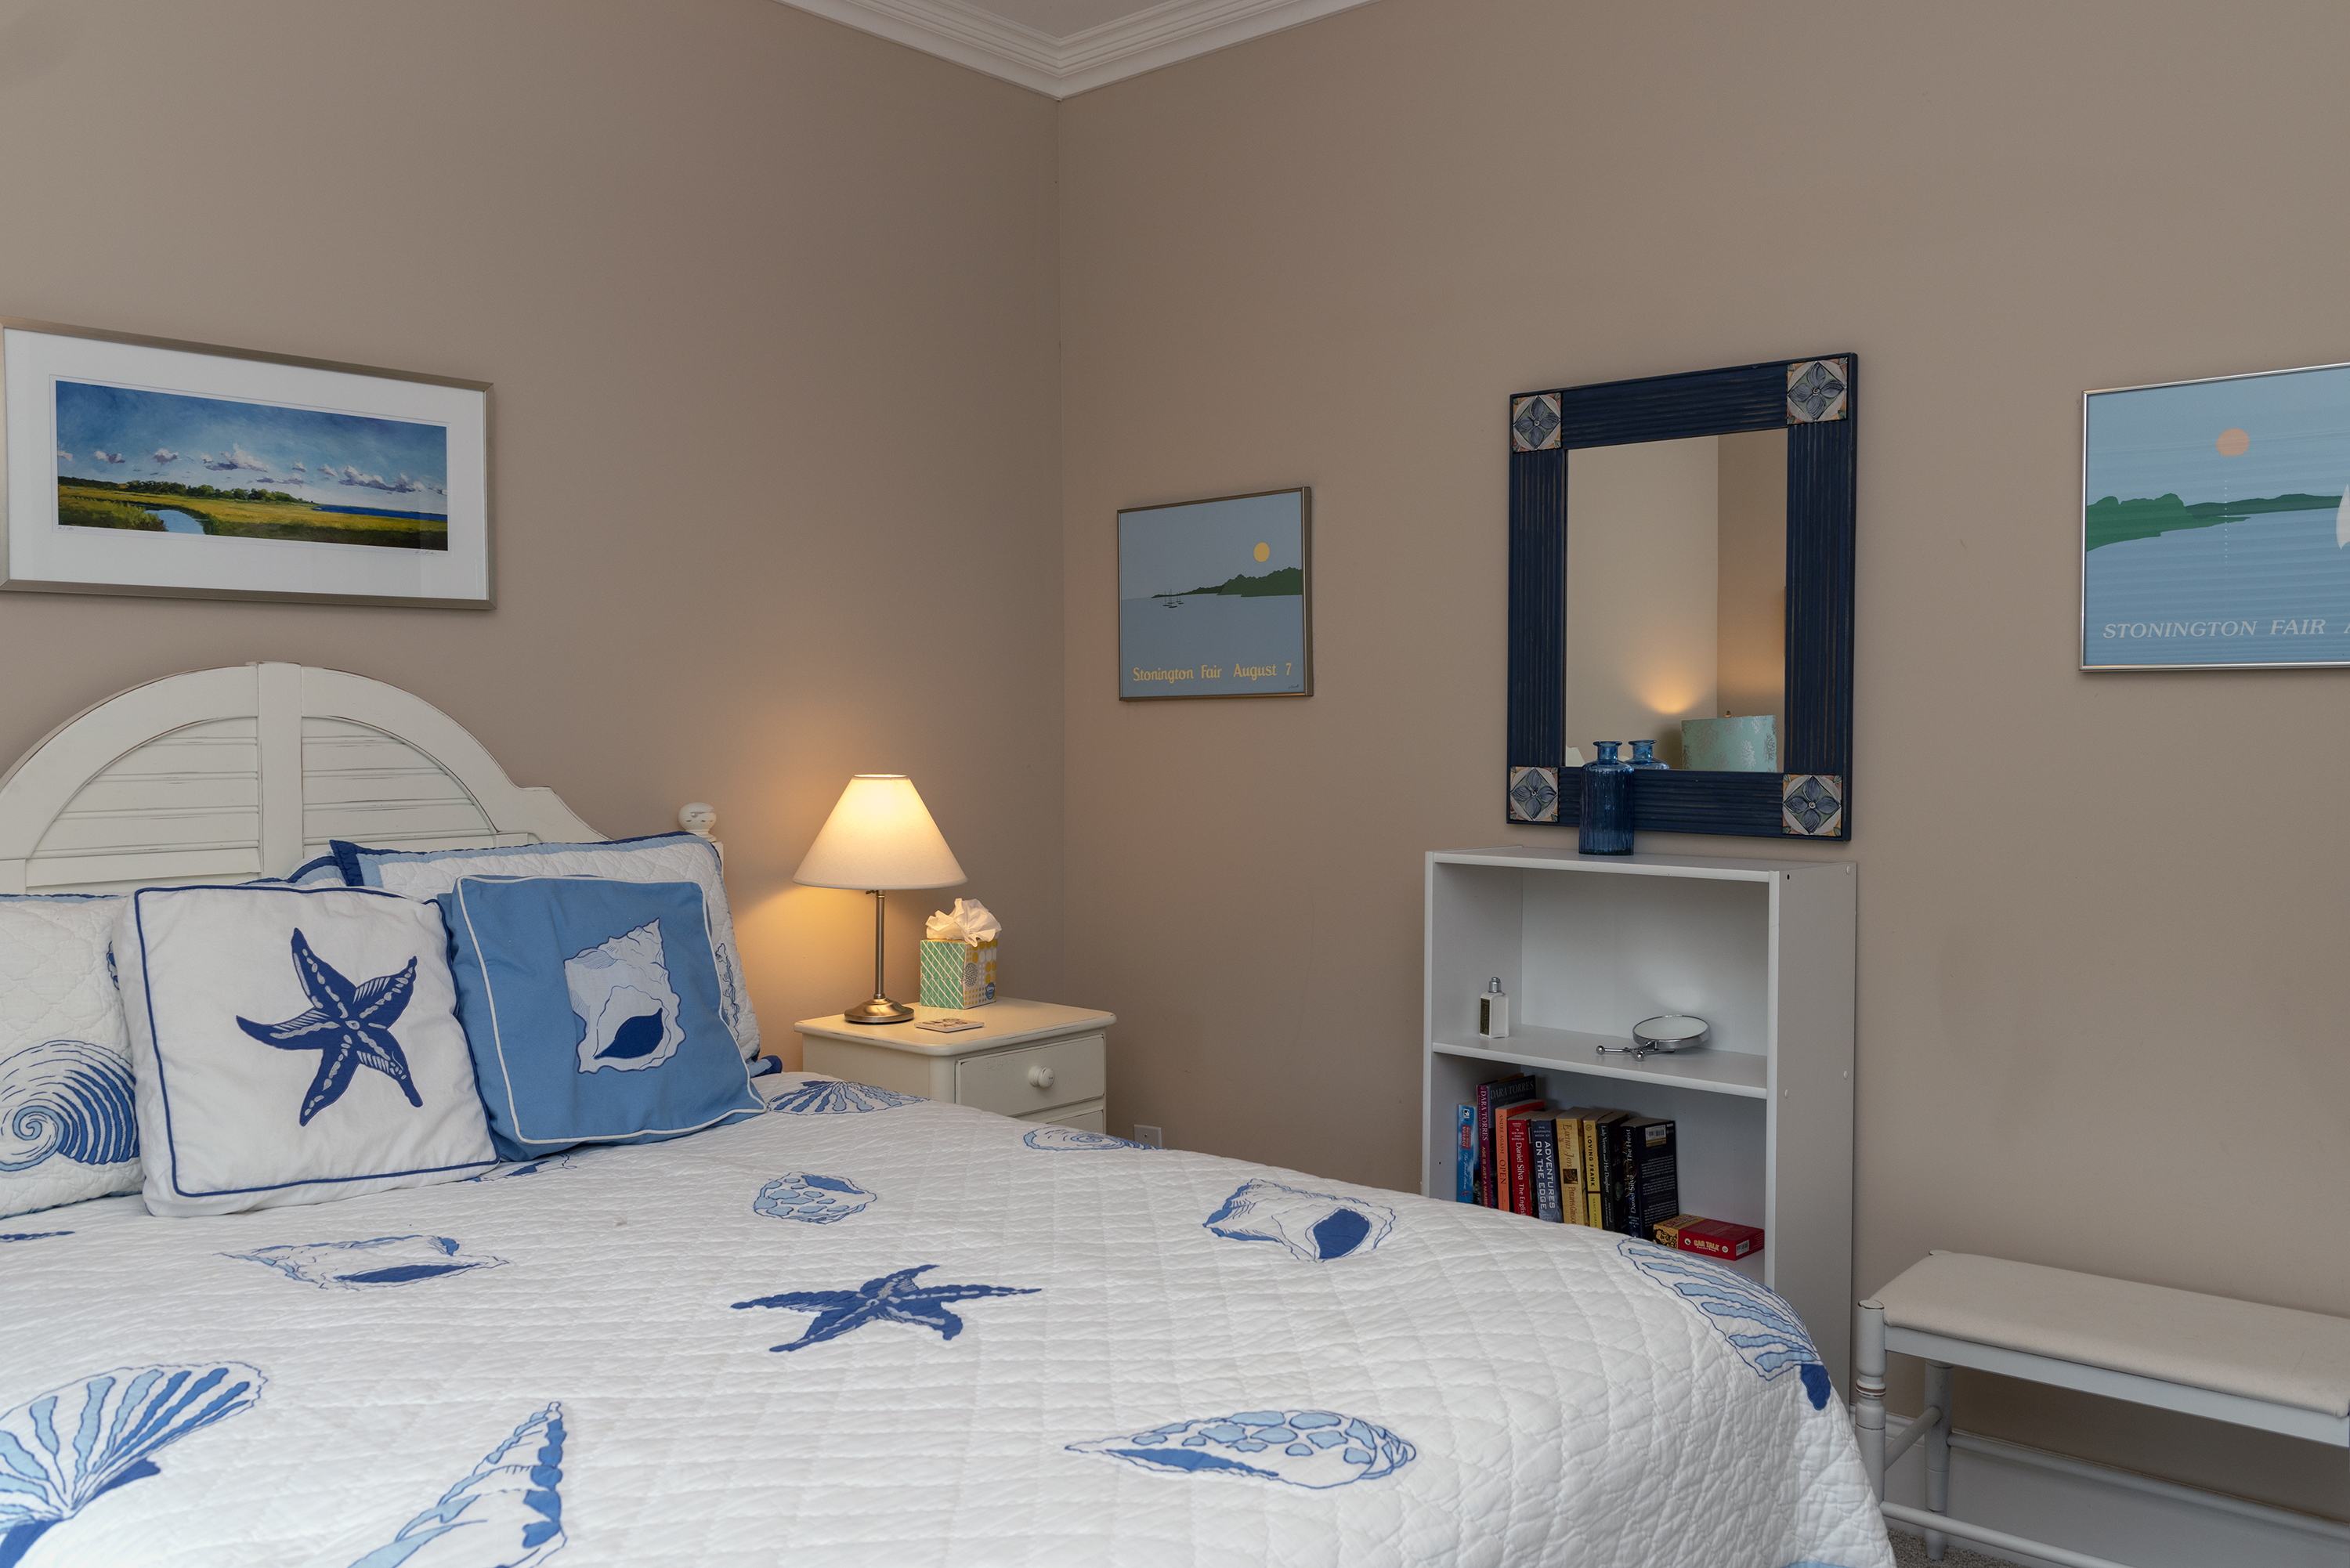 """The guest bedroom has a """"beachy"""" decor with a comfortable bed."""